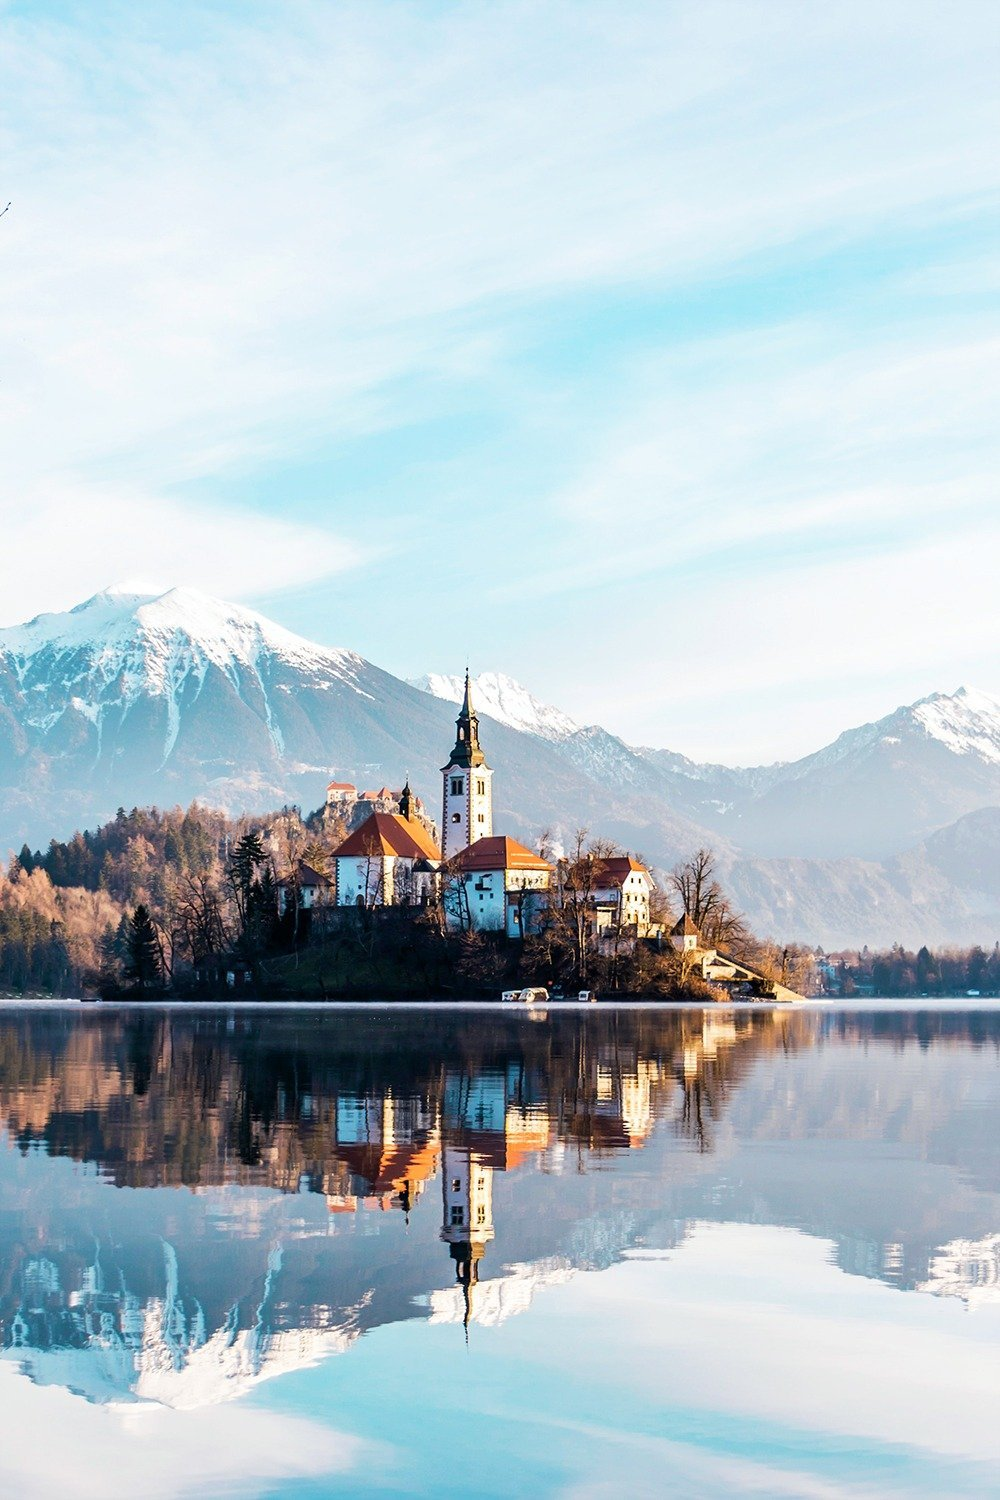 Lake Bled is one of Slovenia's most gorgeous destinations and the perfect setting for a relaxing holiday enjoying the outdoors. With plenty of amazing natural landscapes to explore, a slew of restaurants serving Slovenian and international cuisine, and a long list of adventures and experiences to check out, a holiday in Lake Bled is one that's sure to be sweet and satisfying. Here are the best things to see and do in Lake Bled, Slovenia.